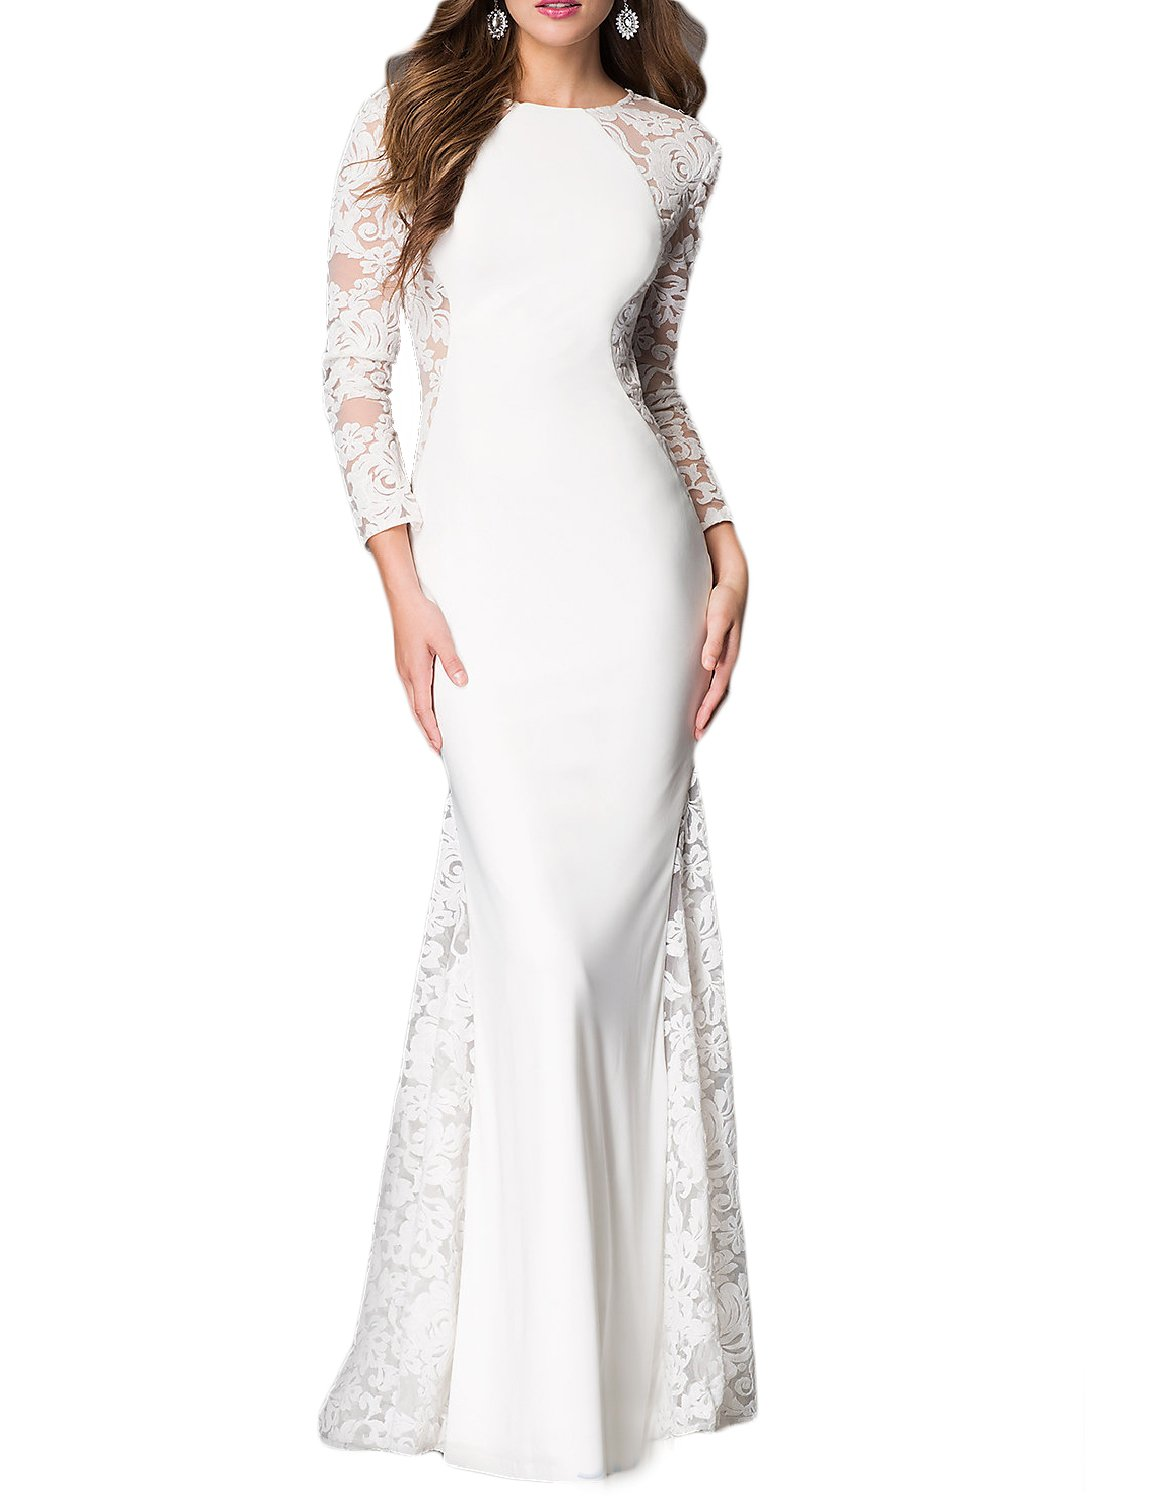 YSMei Women's Long Mermaid Lace Evening Celebrity Dress with sleeves Prom Pageant Formal Gowns White 20W